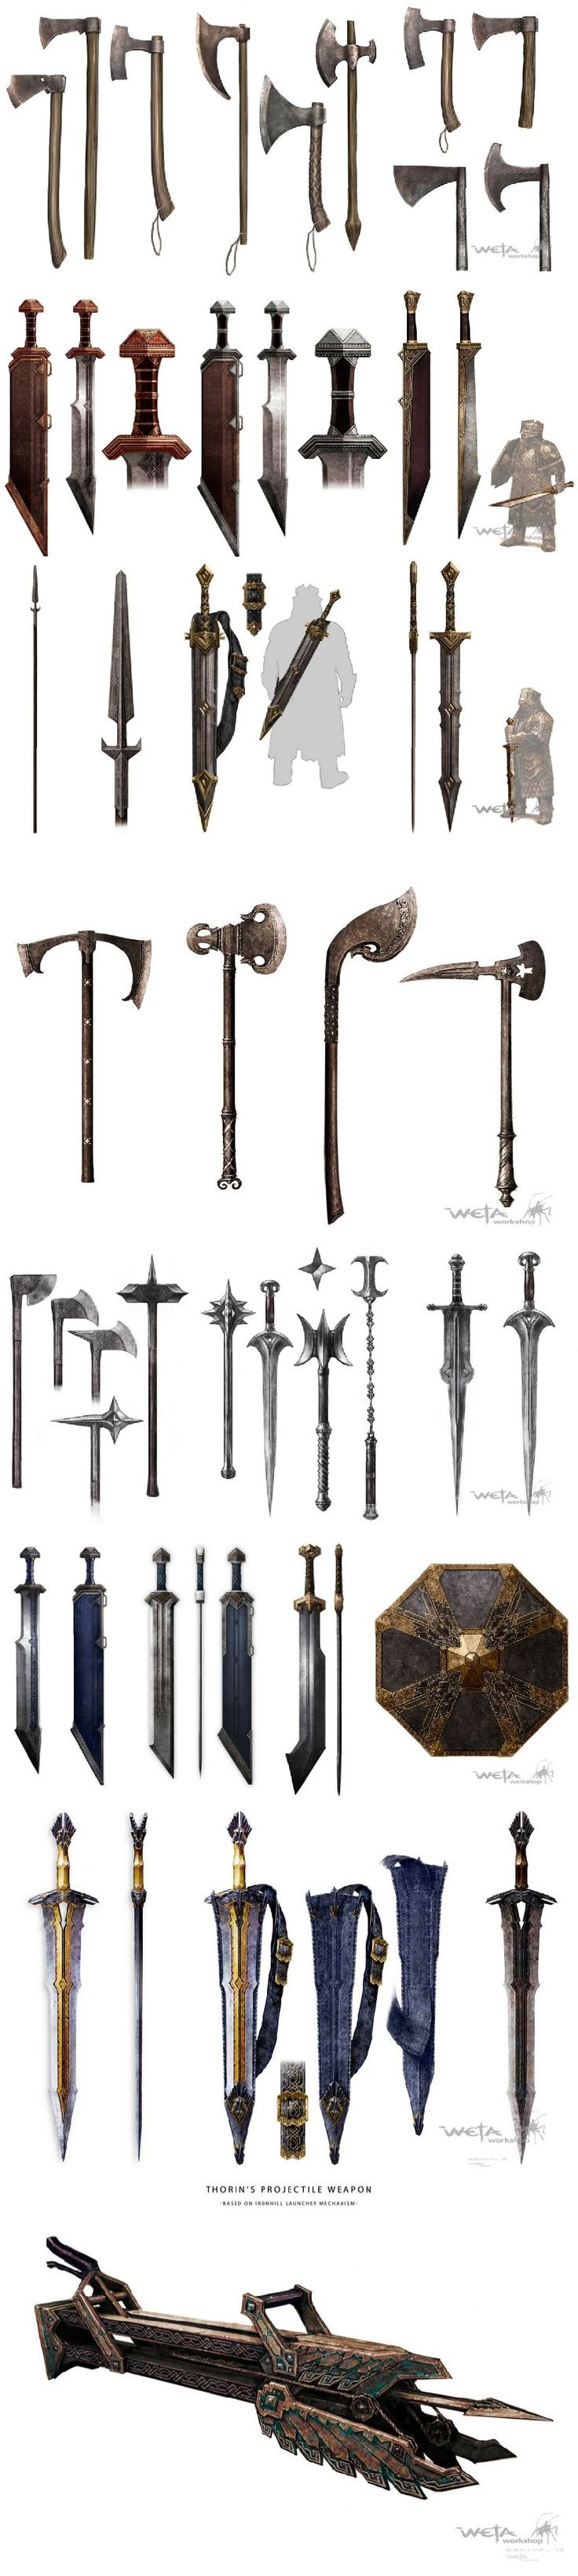 <3 Erebor dwarves weapons concept art_原描述_by Weta Workshop <3